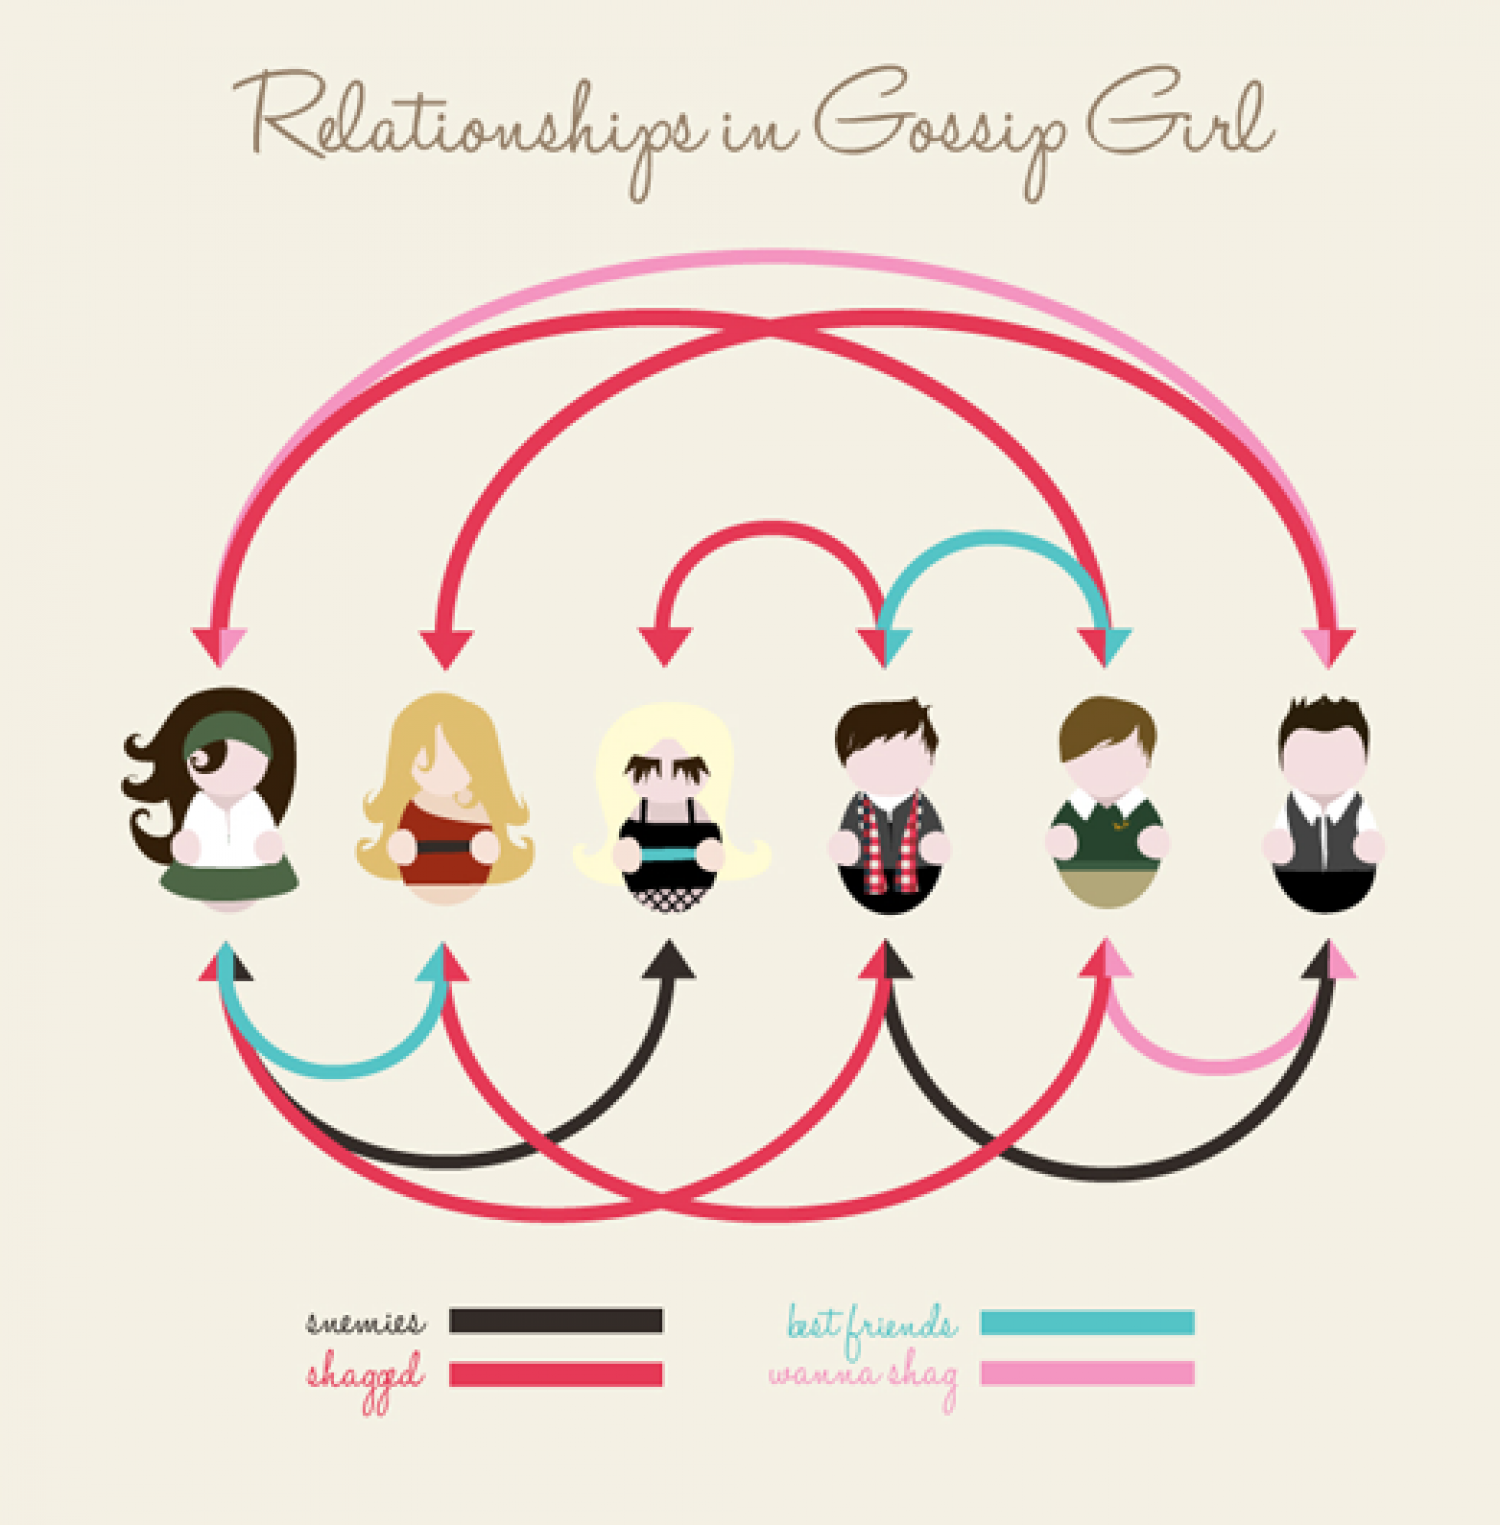 Relationships in Gossip Girl Infographic